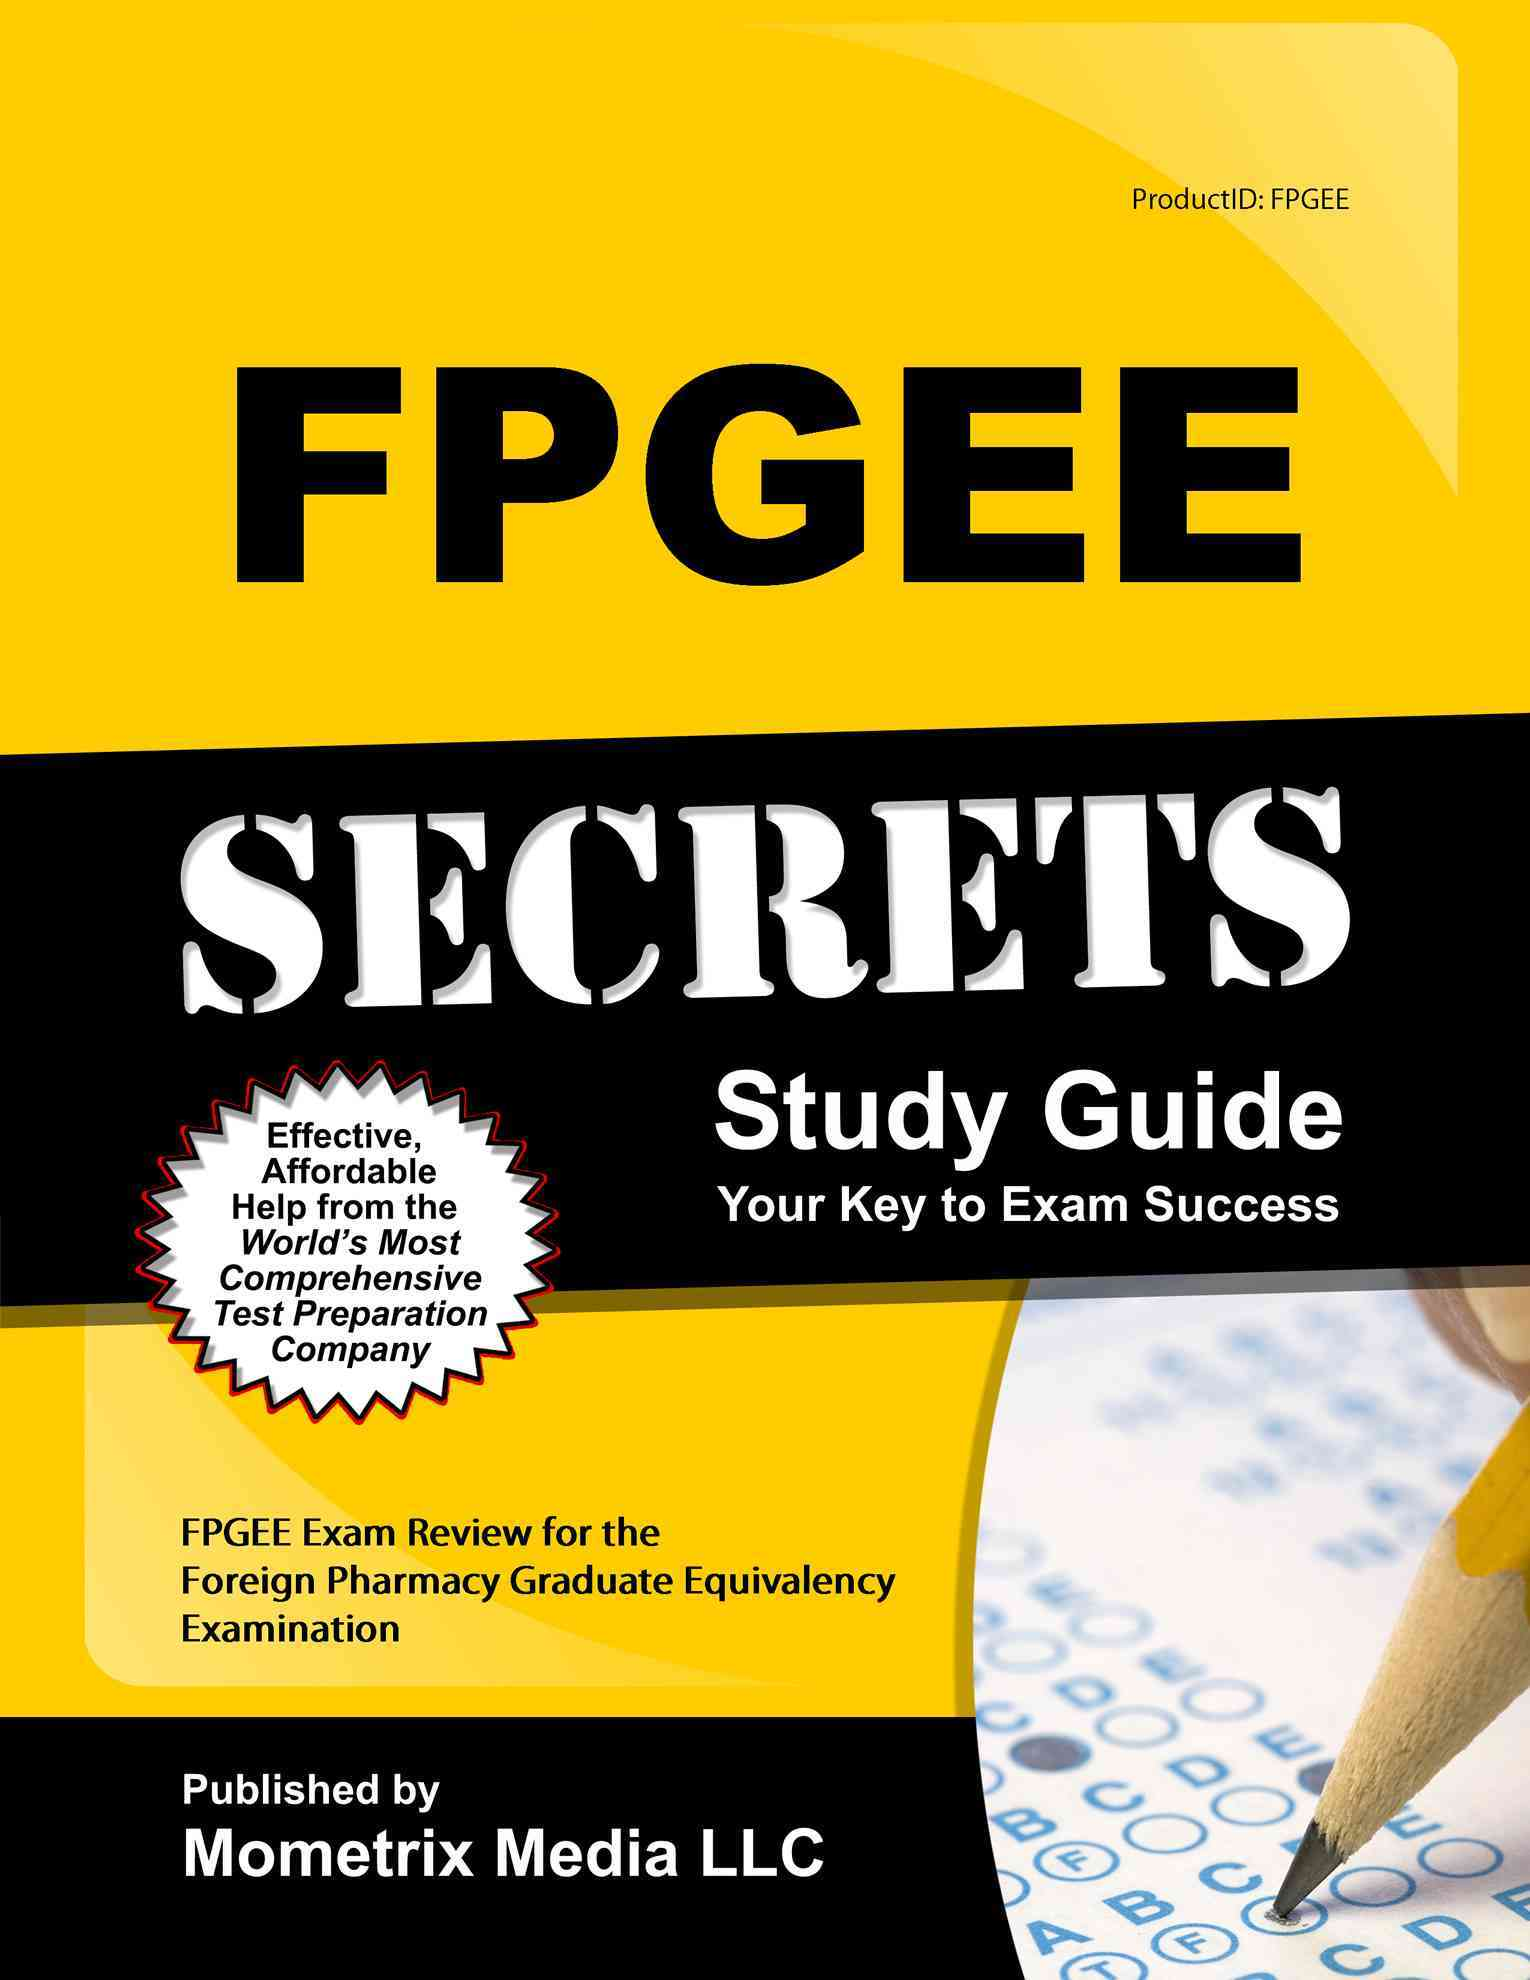 Fpgee Secrets Study Guide By Fpgee Exam Secrets (EDT)